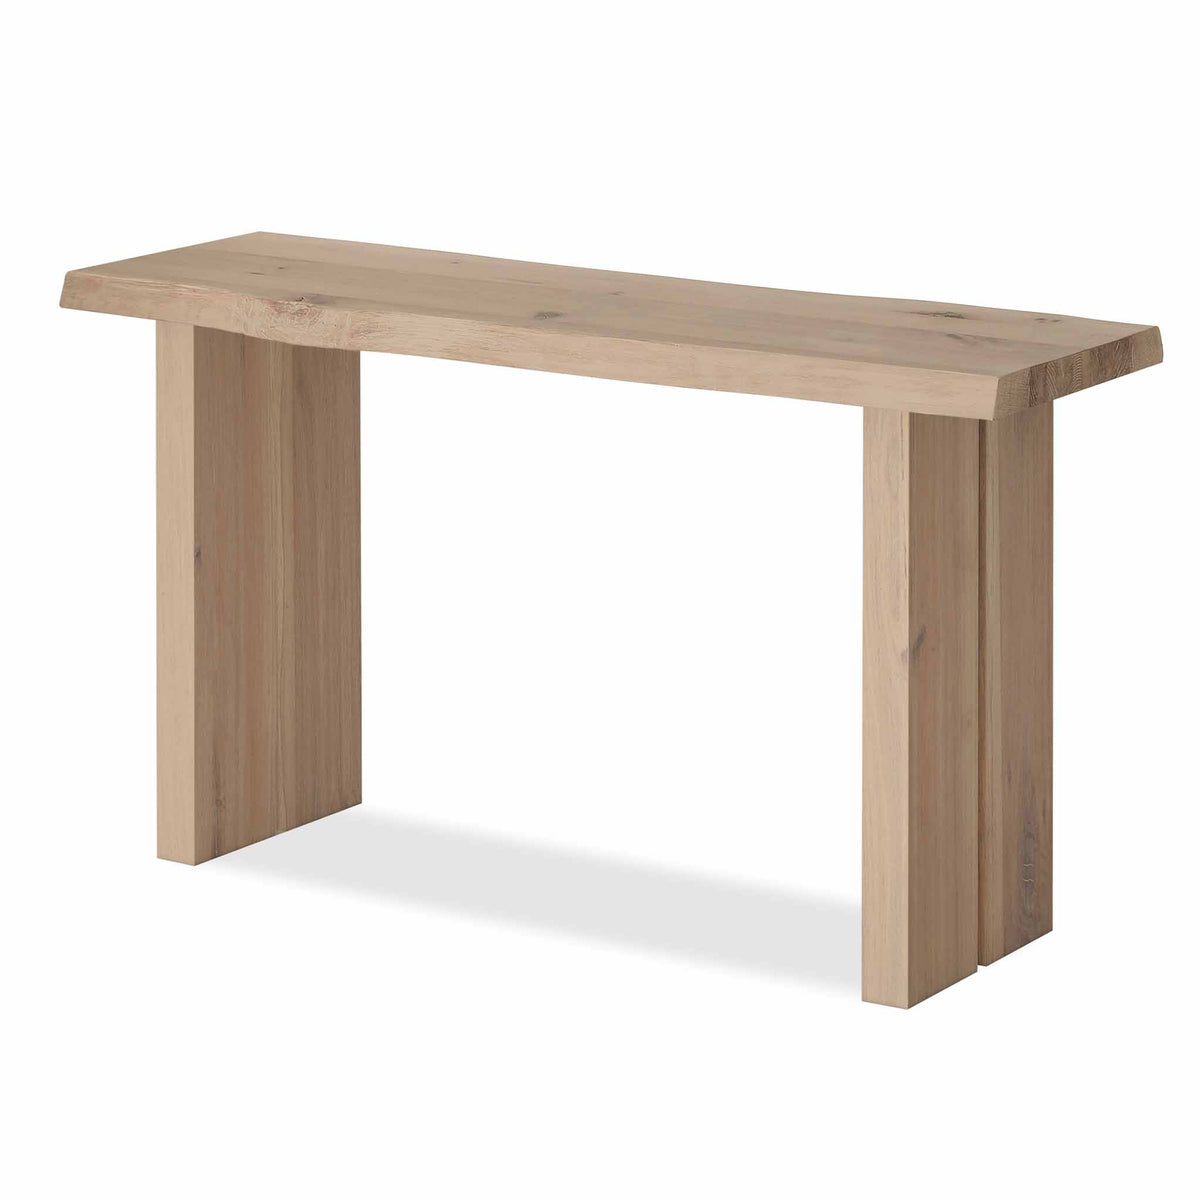 Oak Mill Console Table - Wood Base - White Oil